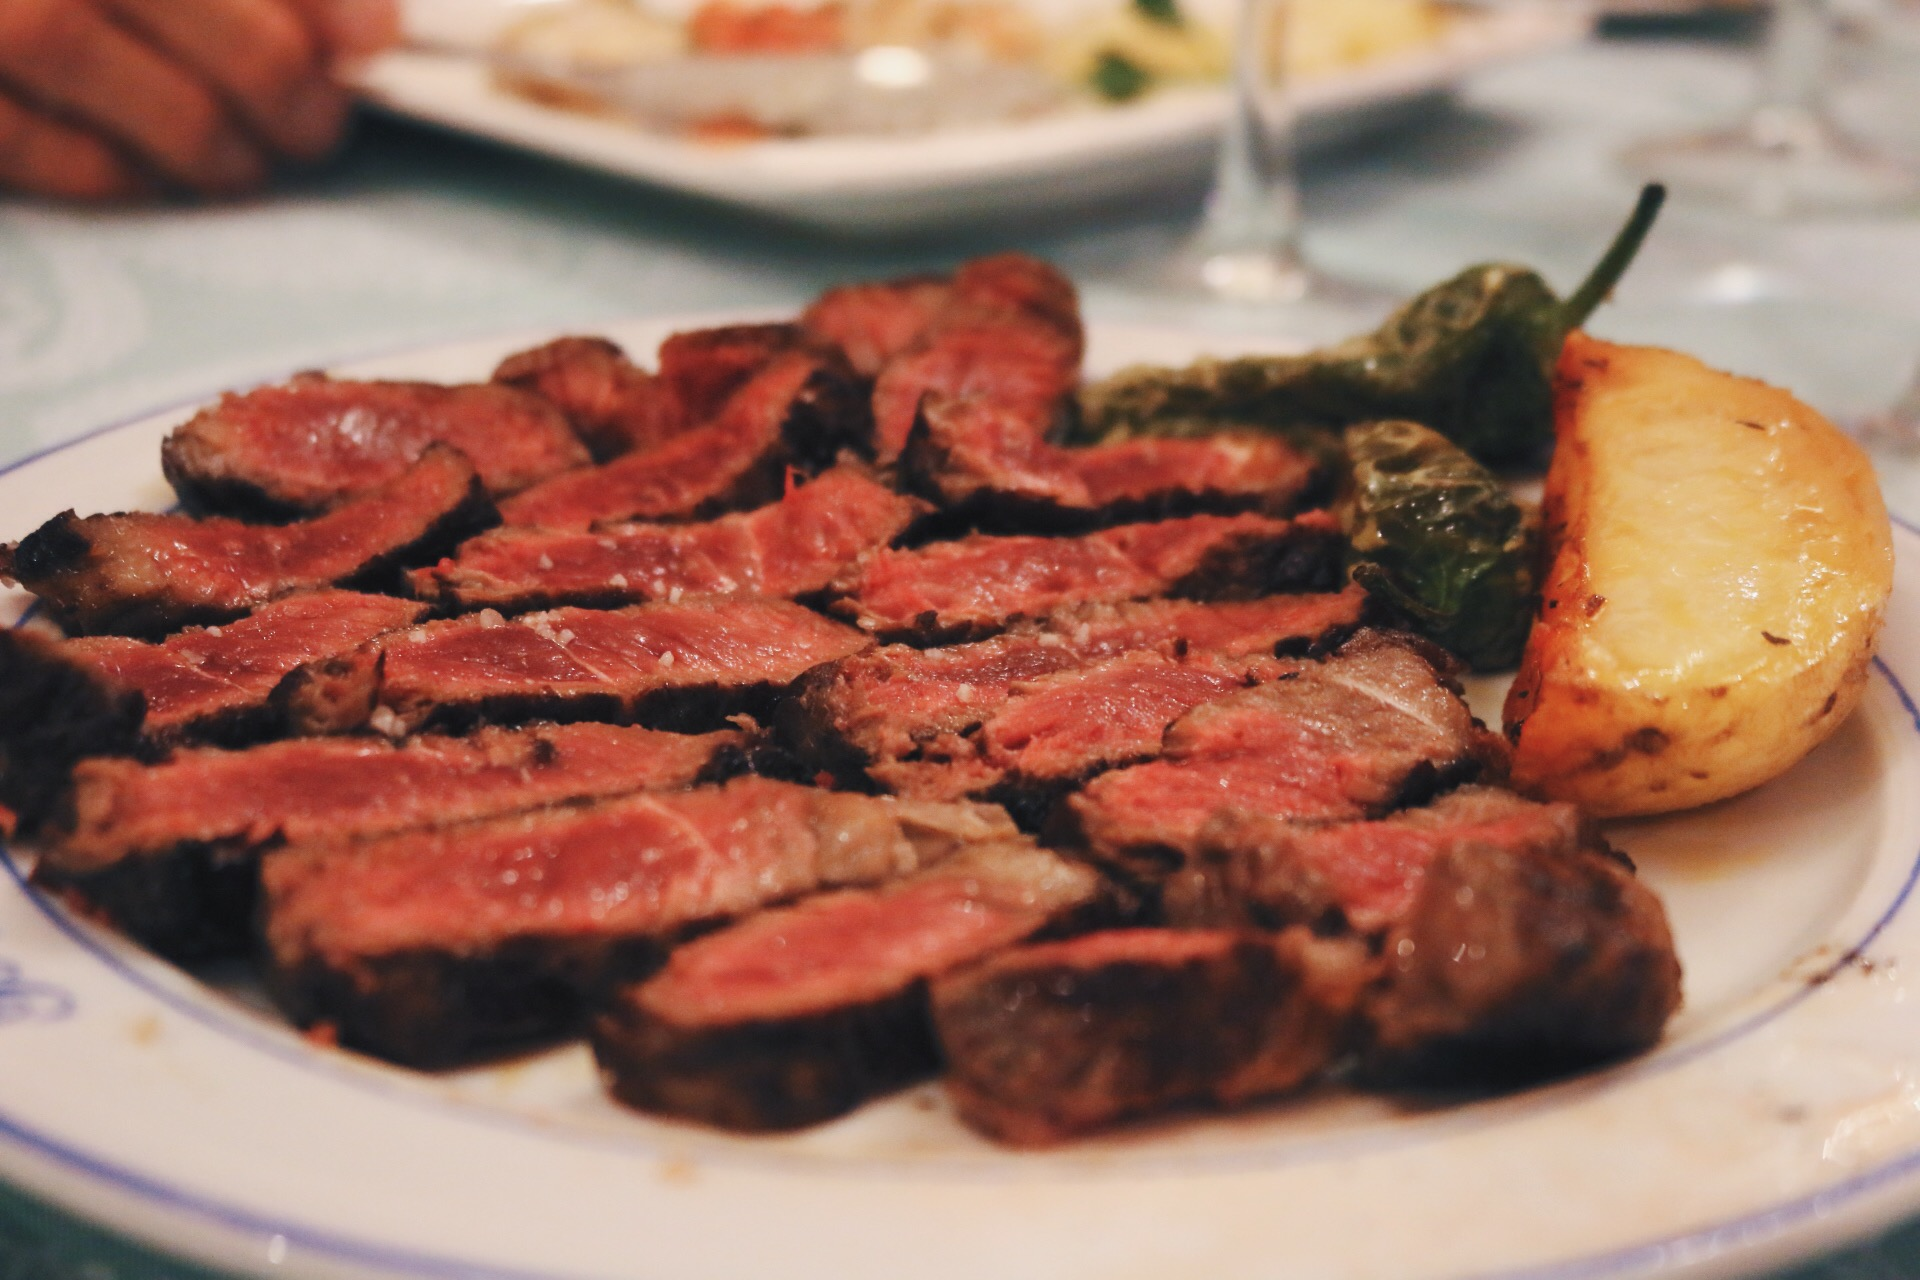 STEAK, POTATOES AND PIMIENTOS DE PADRON PEPPERS, FAMILY-STYLE